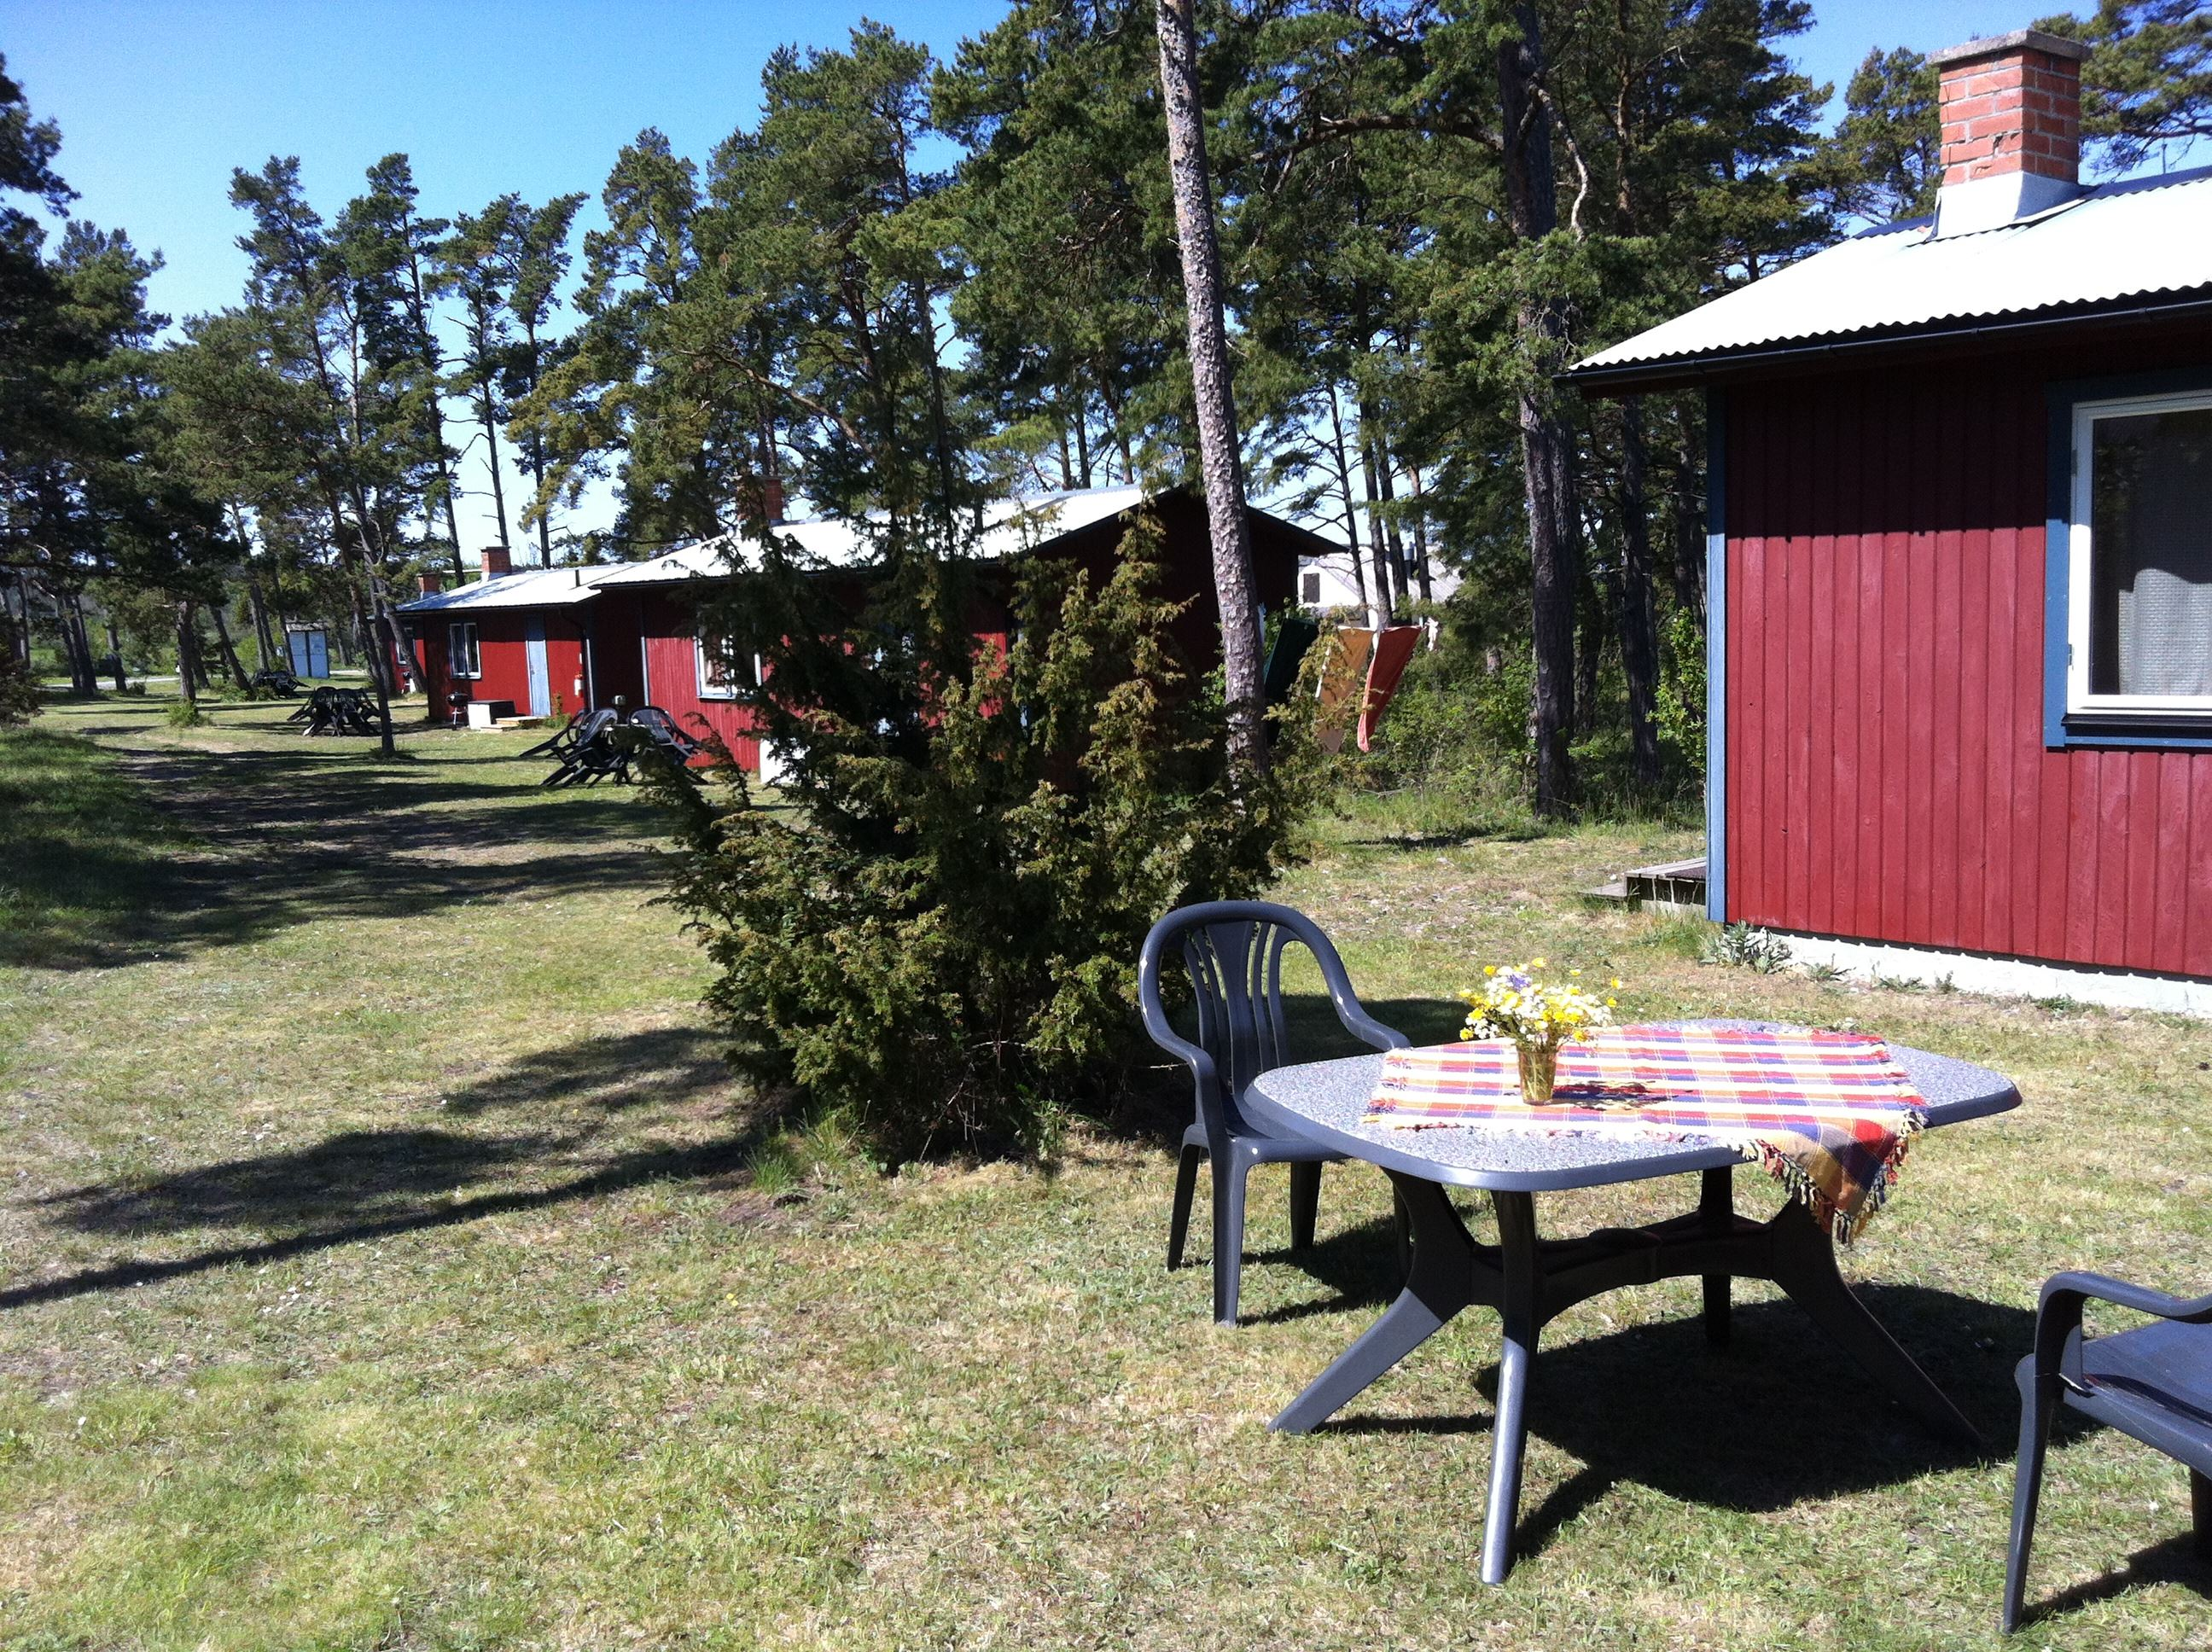 Lickershamn Holiday Village